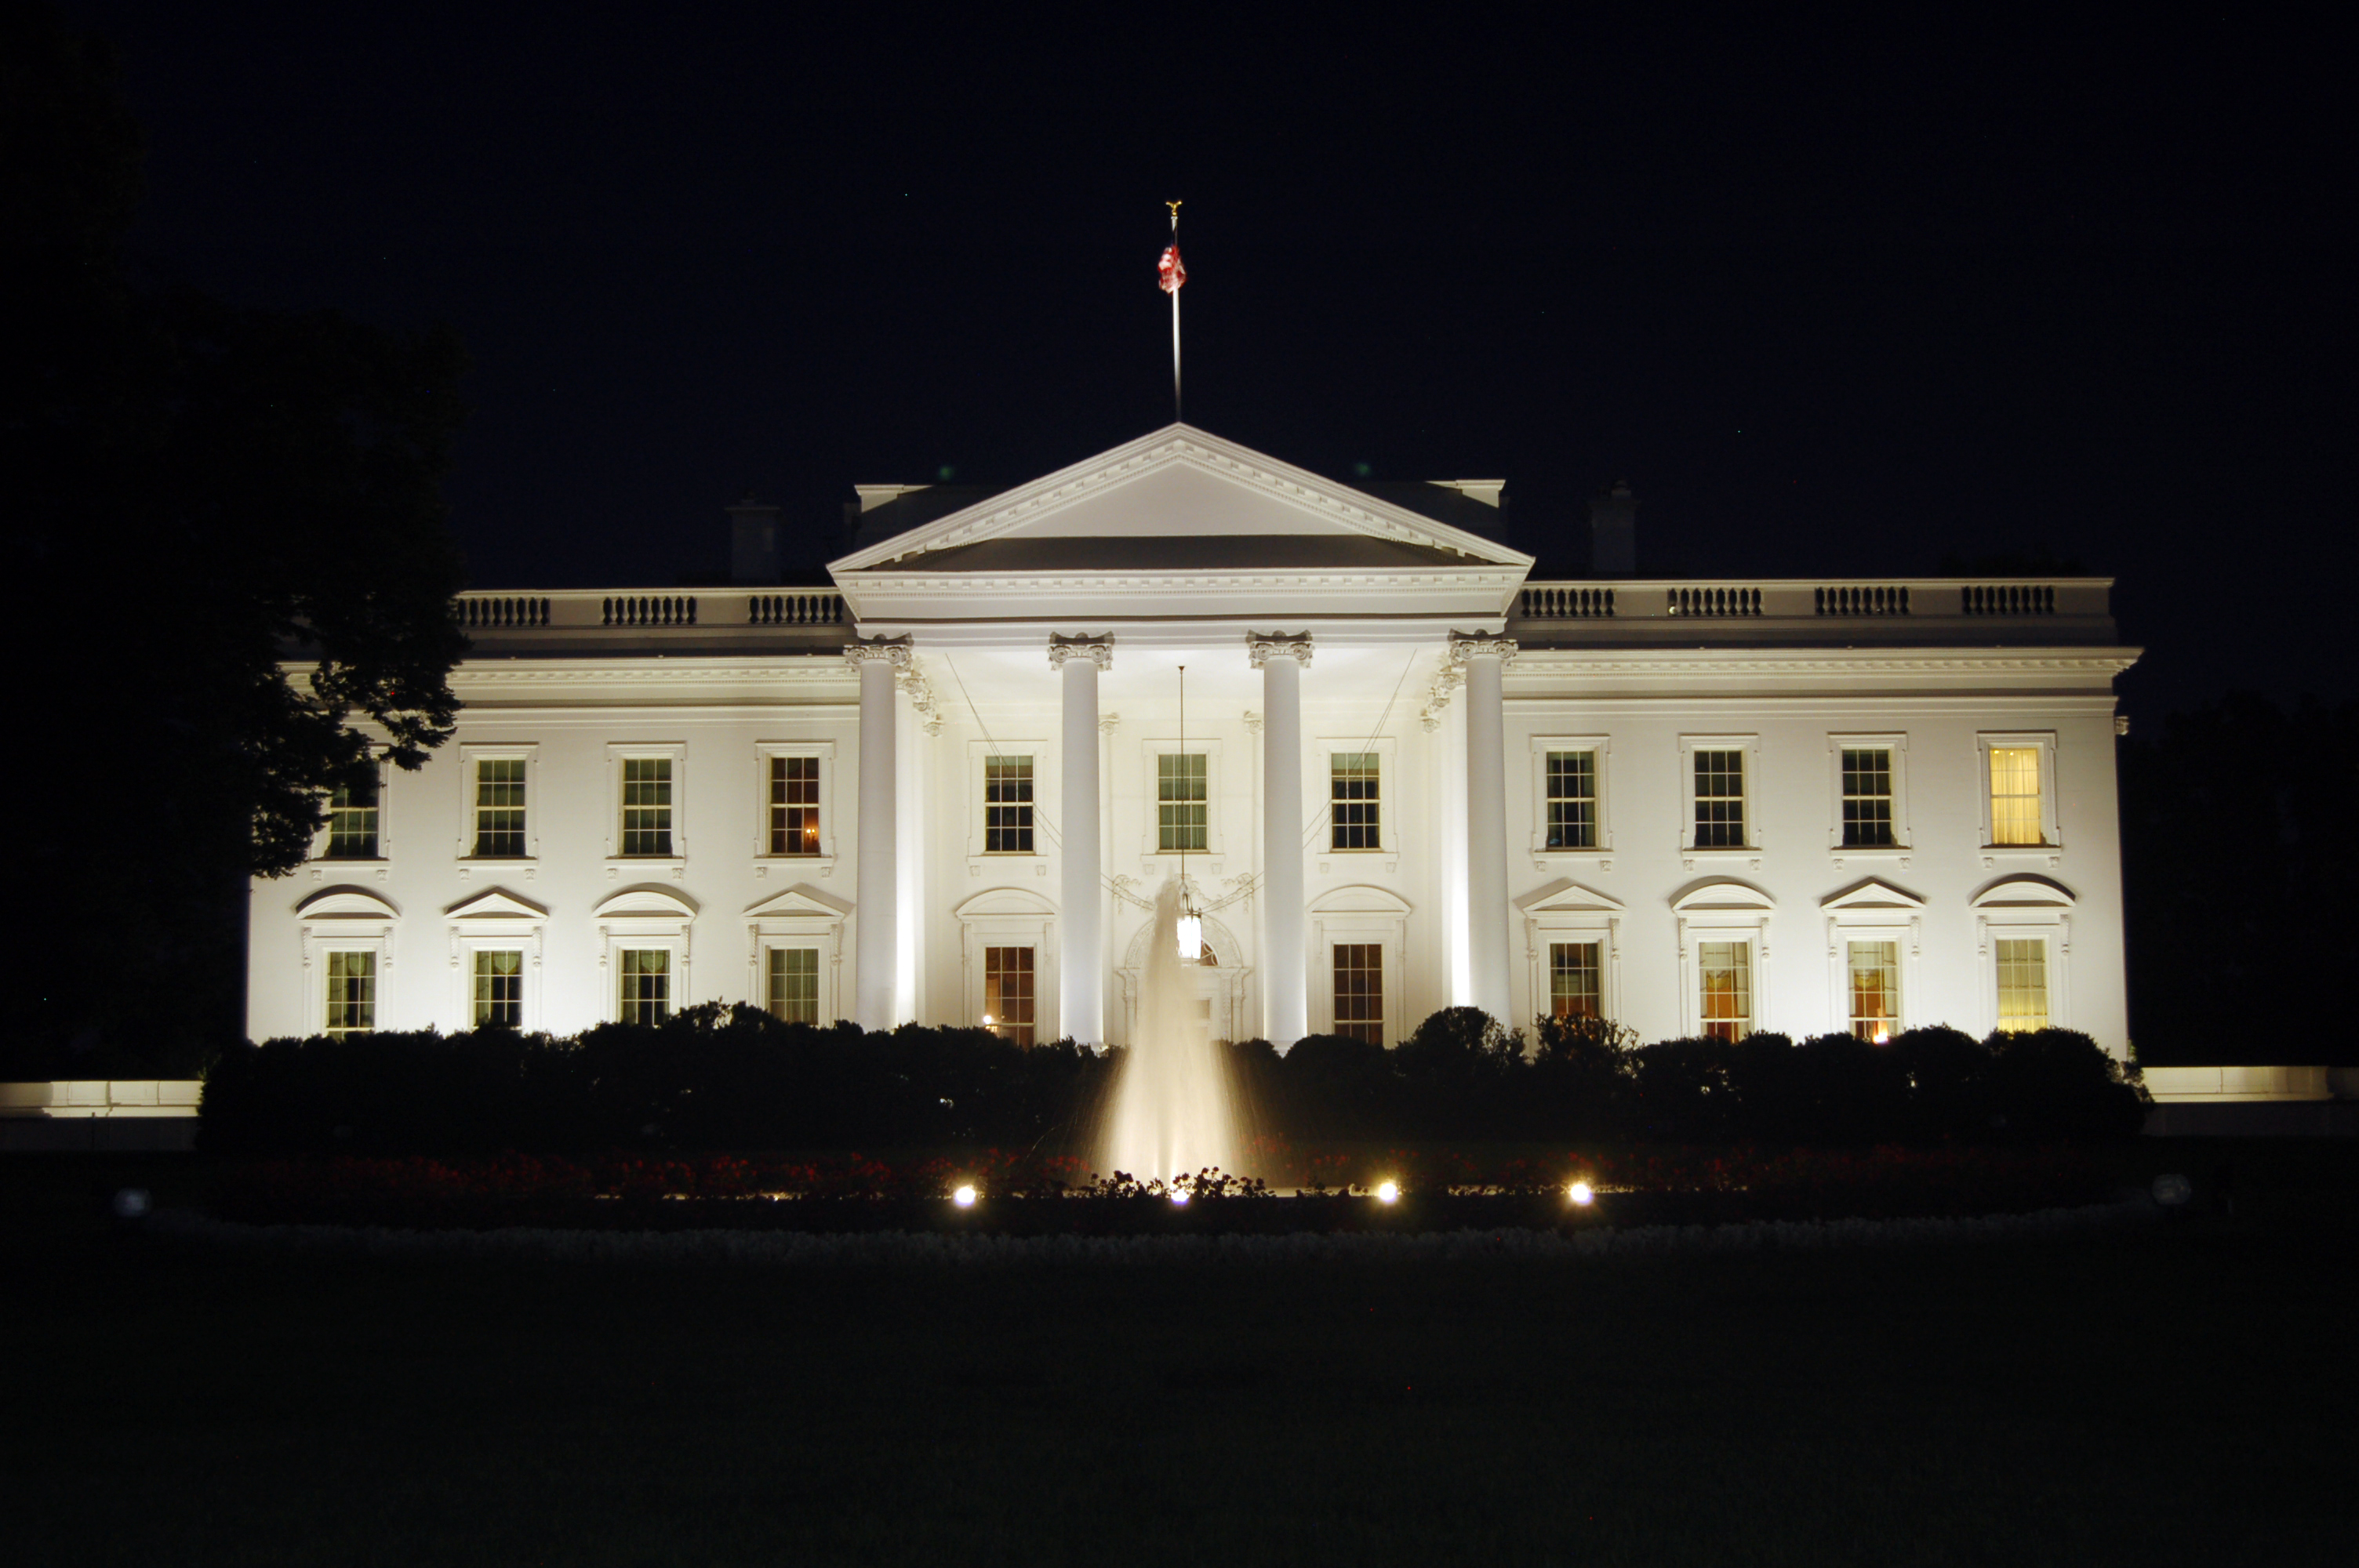 Whitehouse File The White House At Night 2011 Jpg Wikimedia Commons